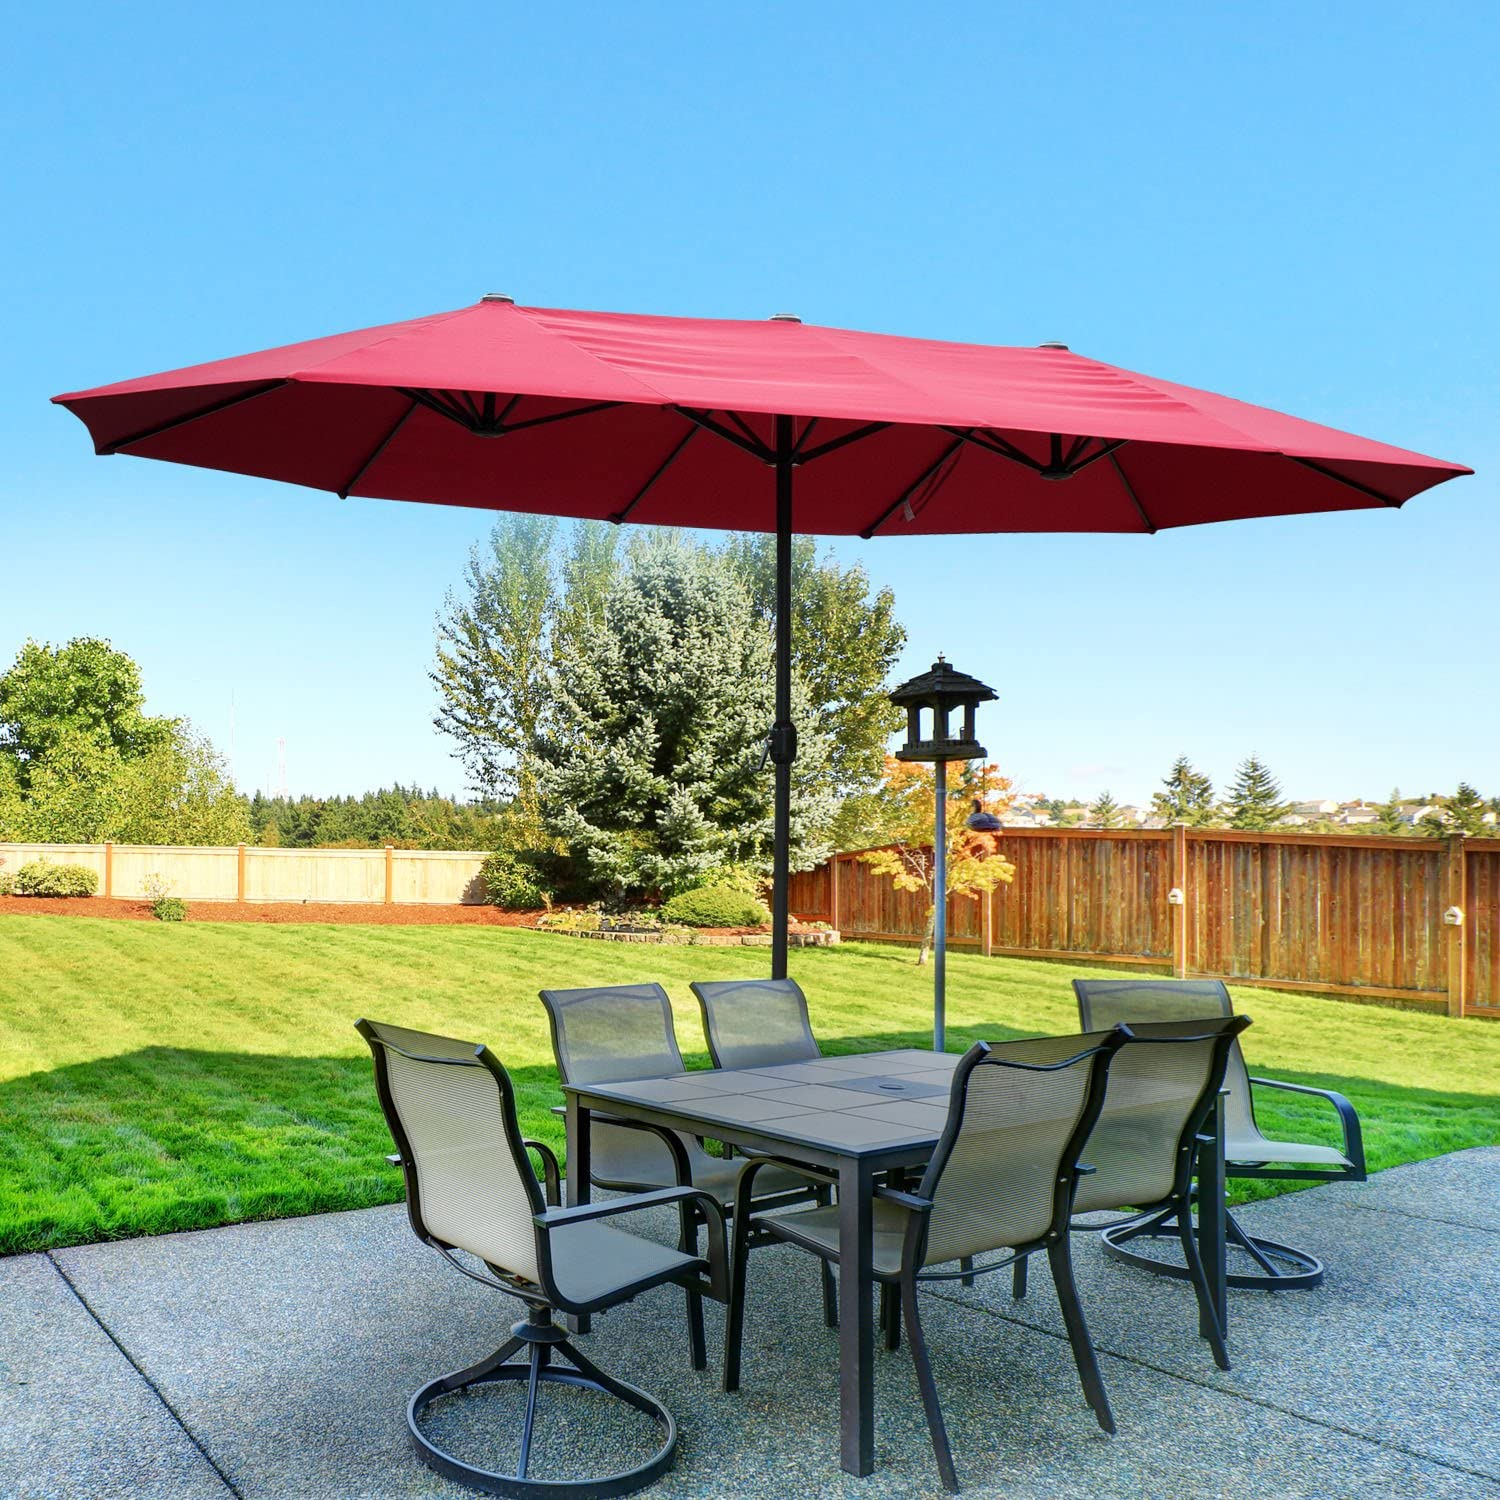 Outsunny 15 Outdoor Patio Umbrella with Twin Canopy Sunshade – Wine Red